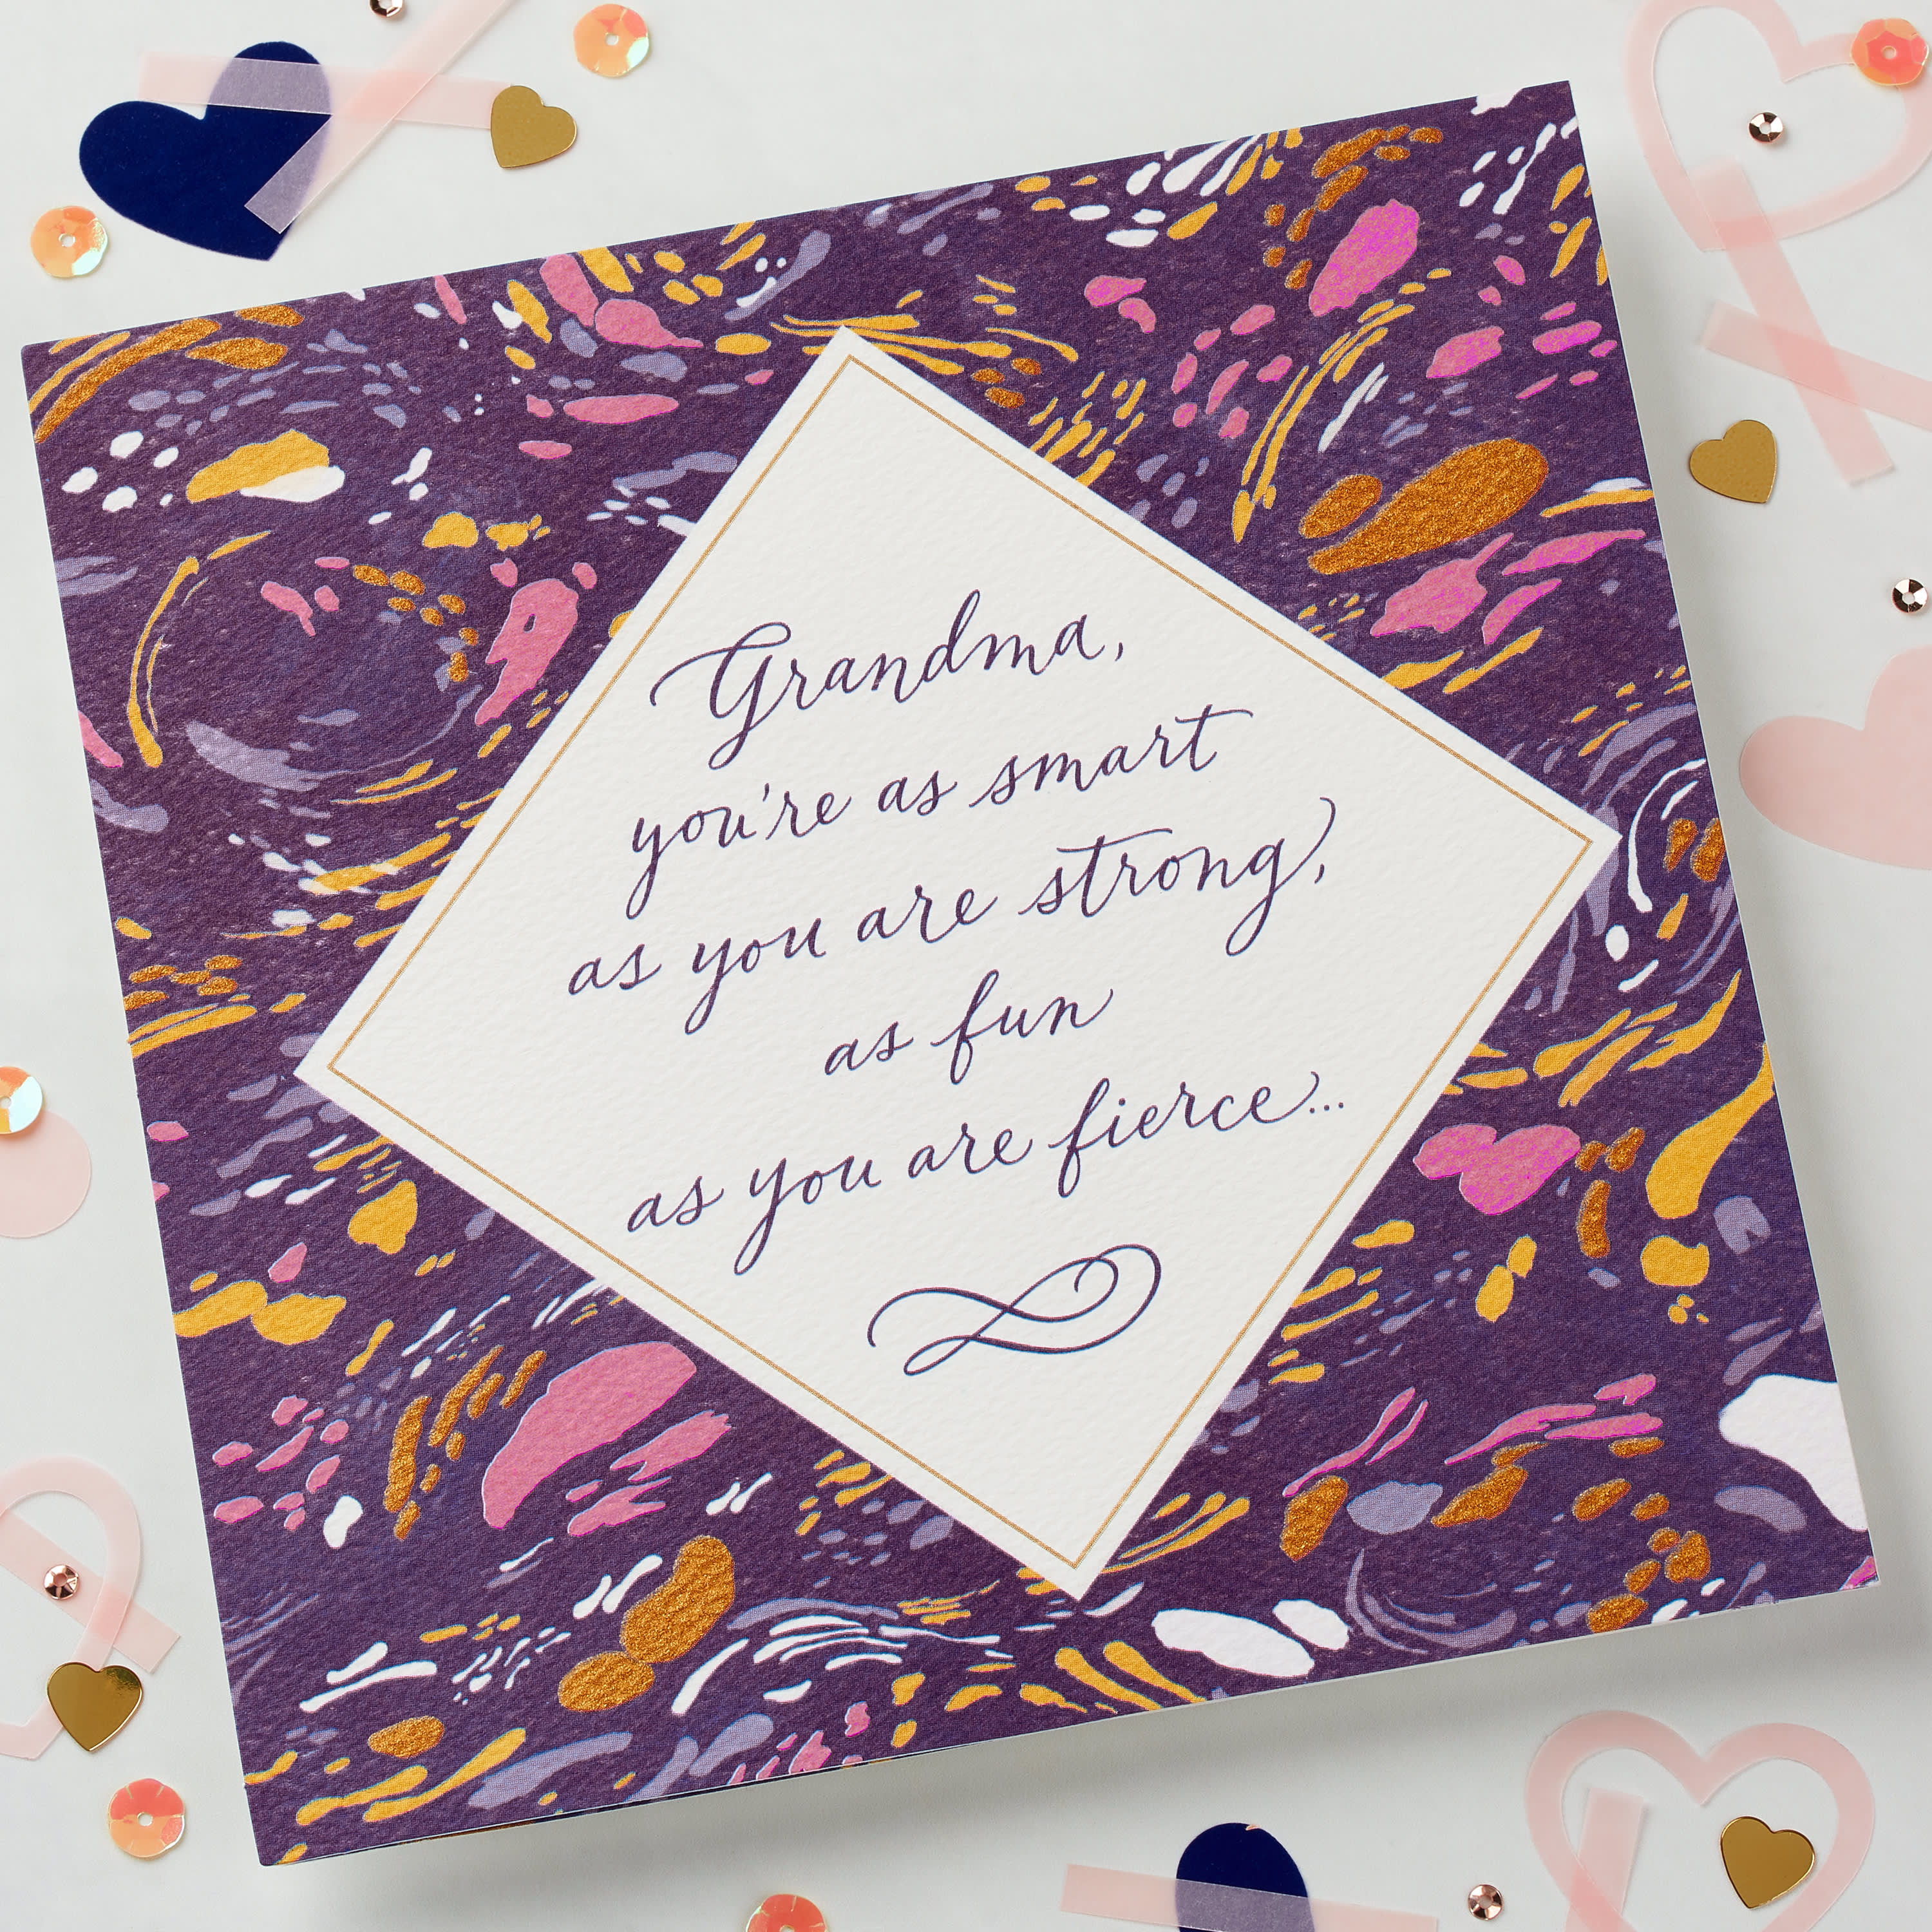 Loving Mother's Day Card for Grandma image